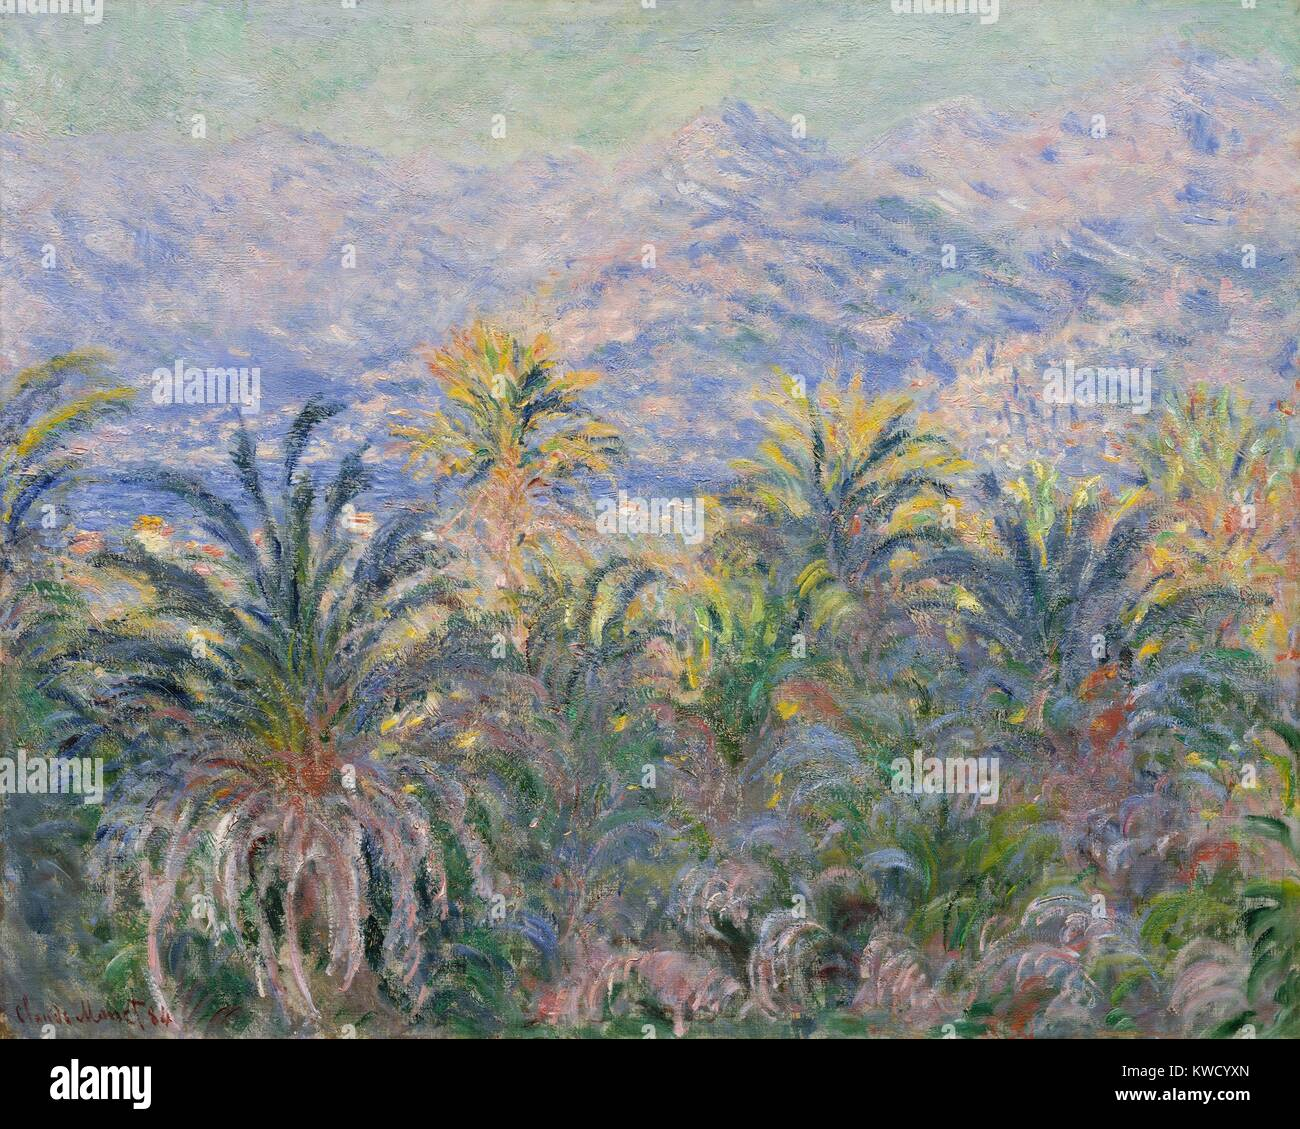 Claude Monet Cuadros Palm Trees At Bordighera By Claude Monet 1884 French